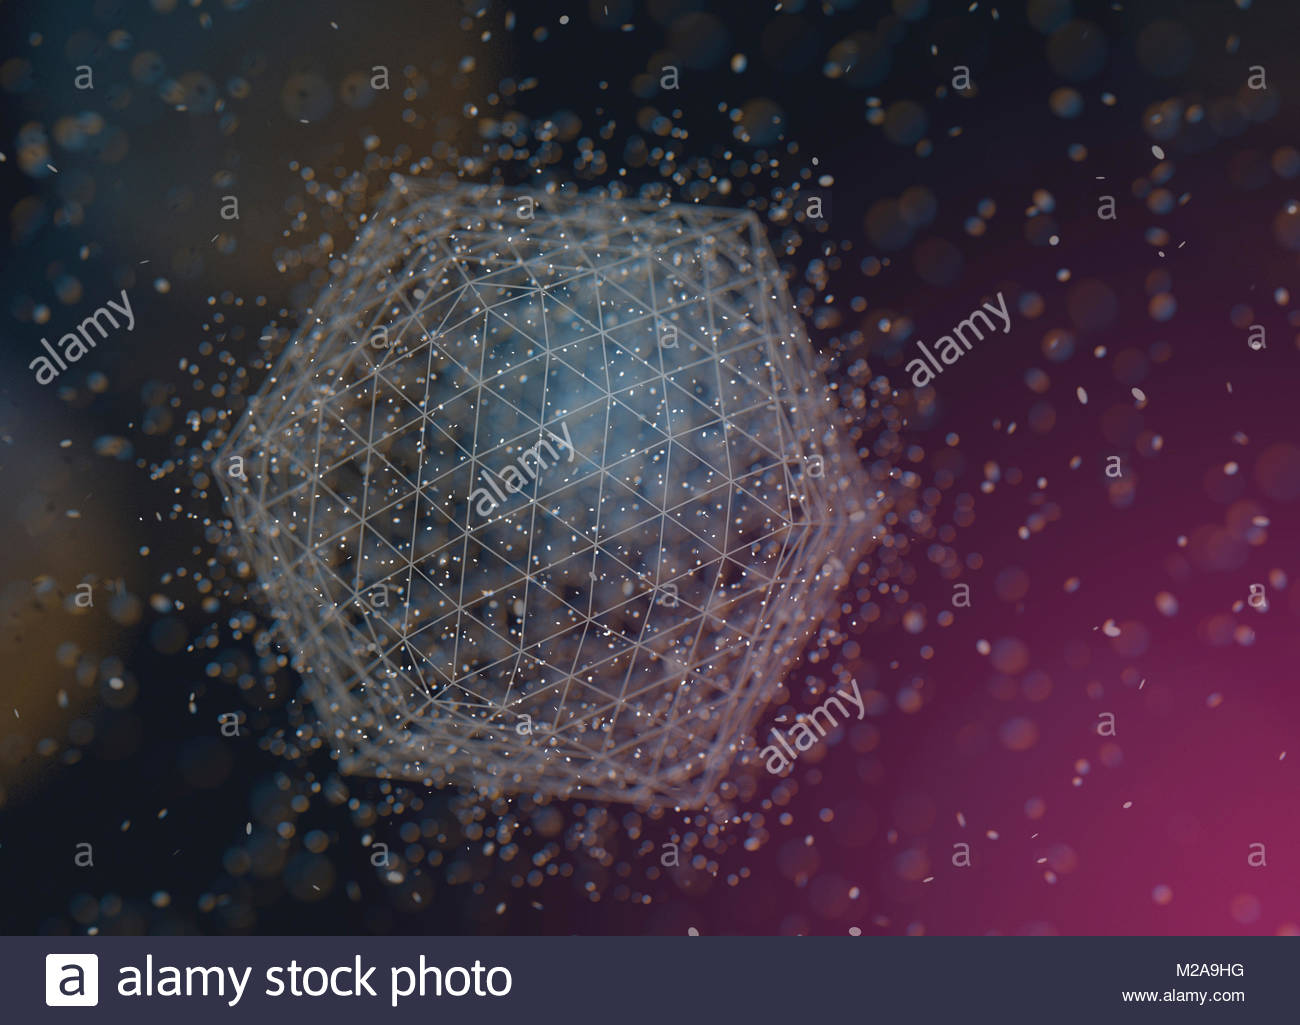 Abstract three dimensional geometric shape of triangles and hexagons - Stock Image